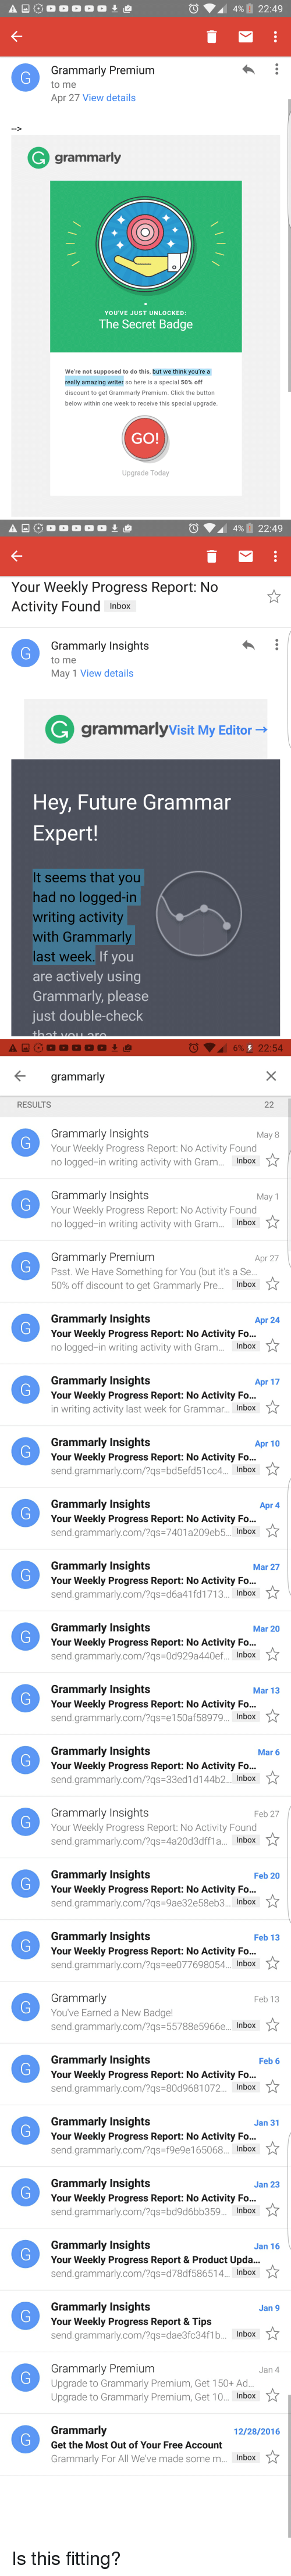 Grammarly Premium to Me Apr 27 View Details Grammarly YOU'VE